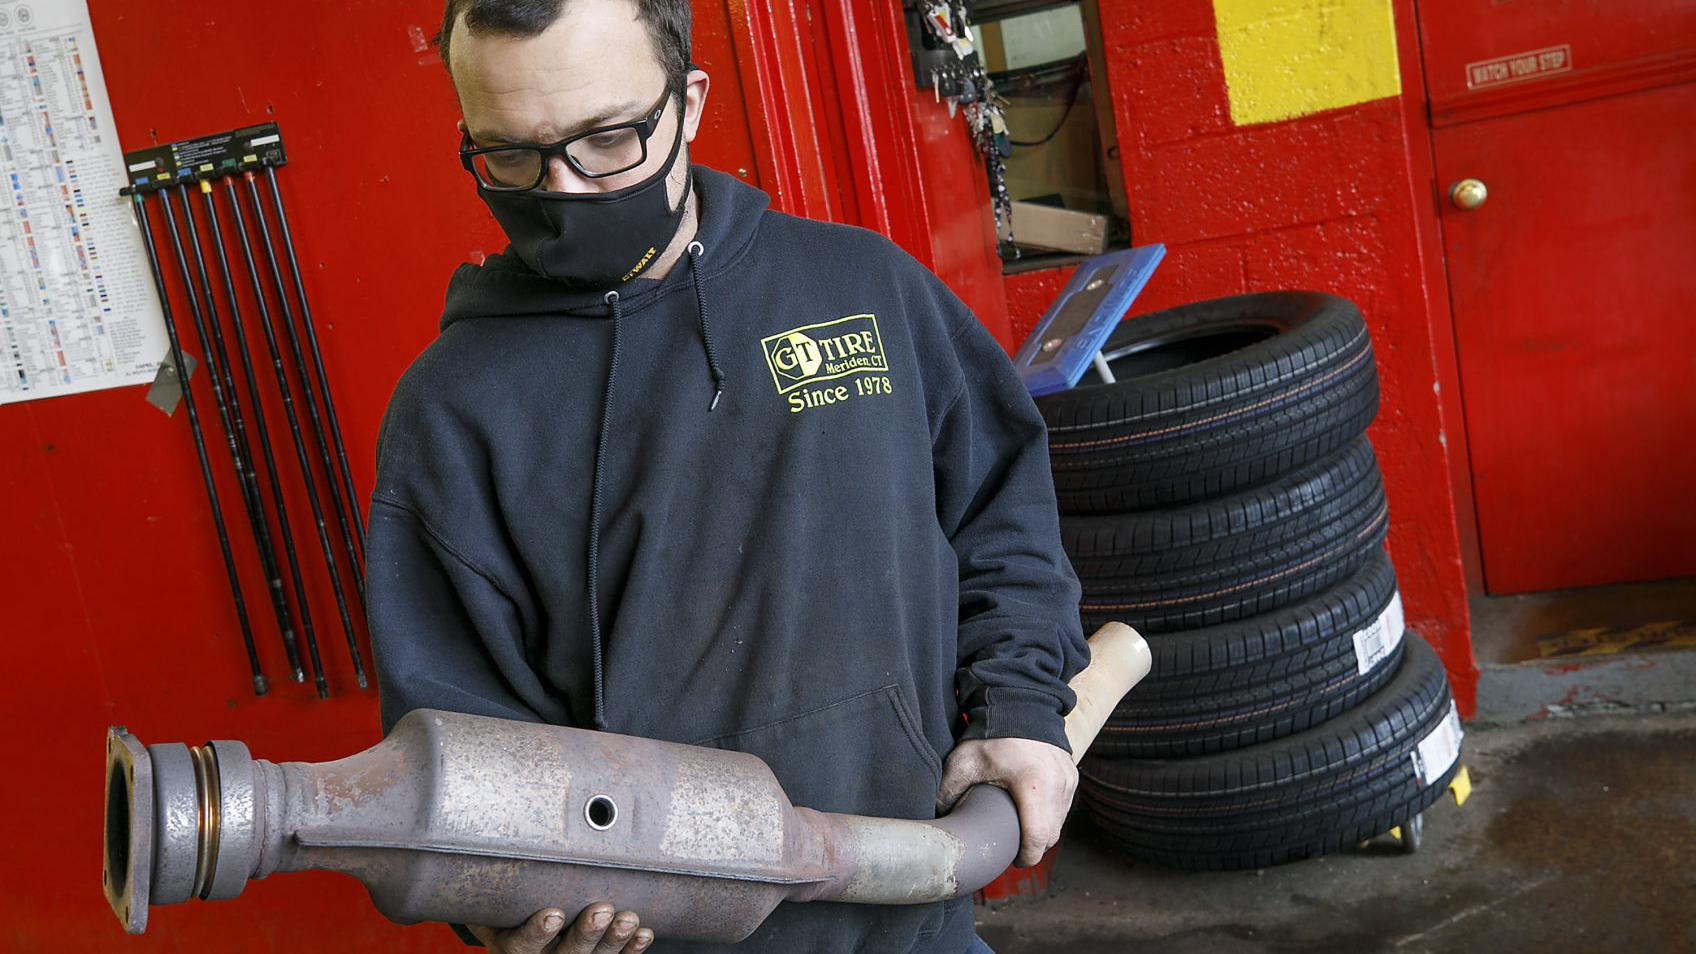 Sheriff's Department, auto repair shops partners to deter catalytic converter thefts